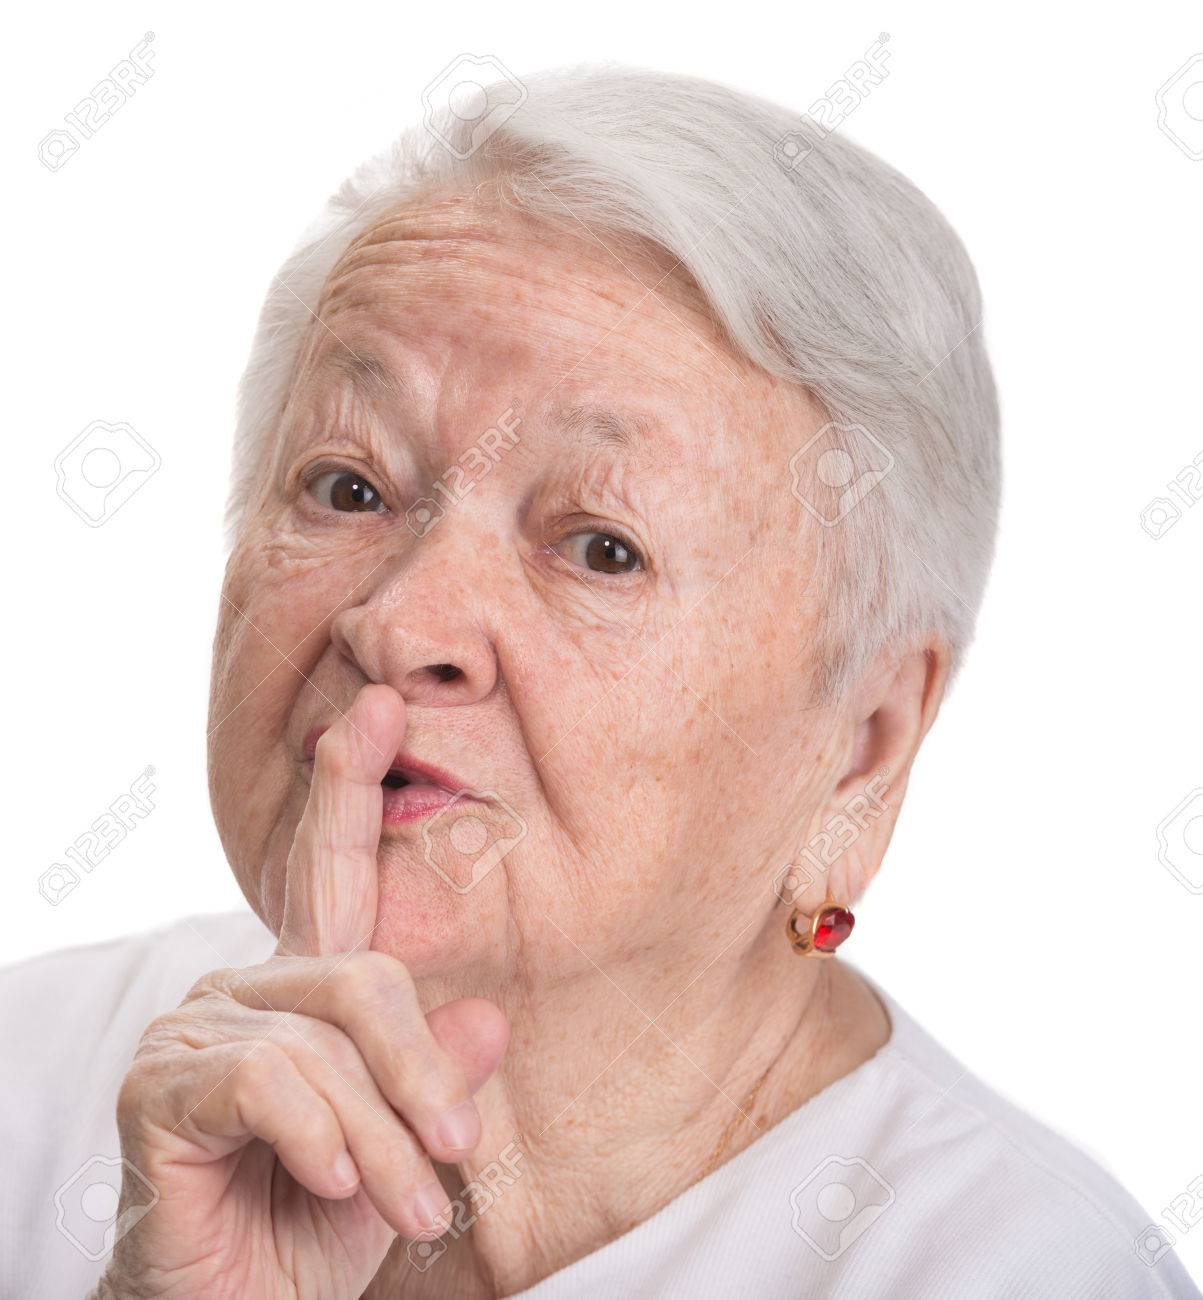 Old woman with finger on lips asking for silence on a white background Stock Photo - 27226880